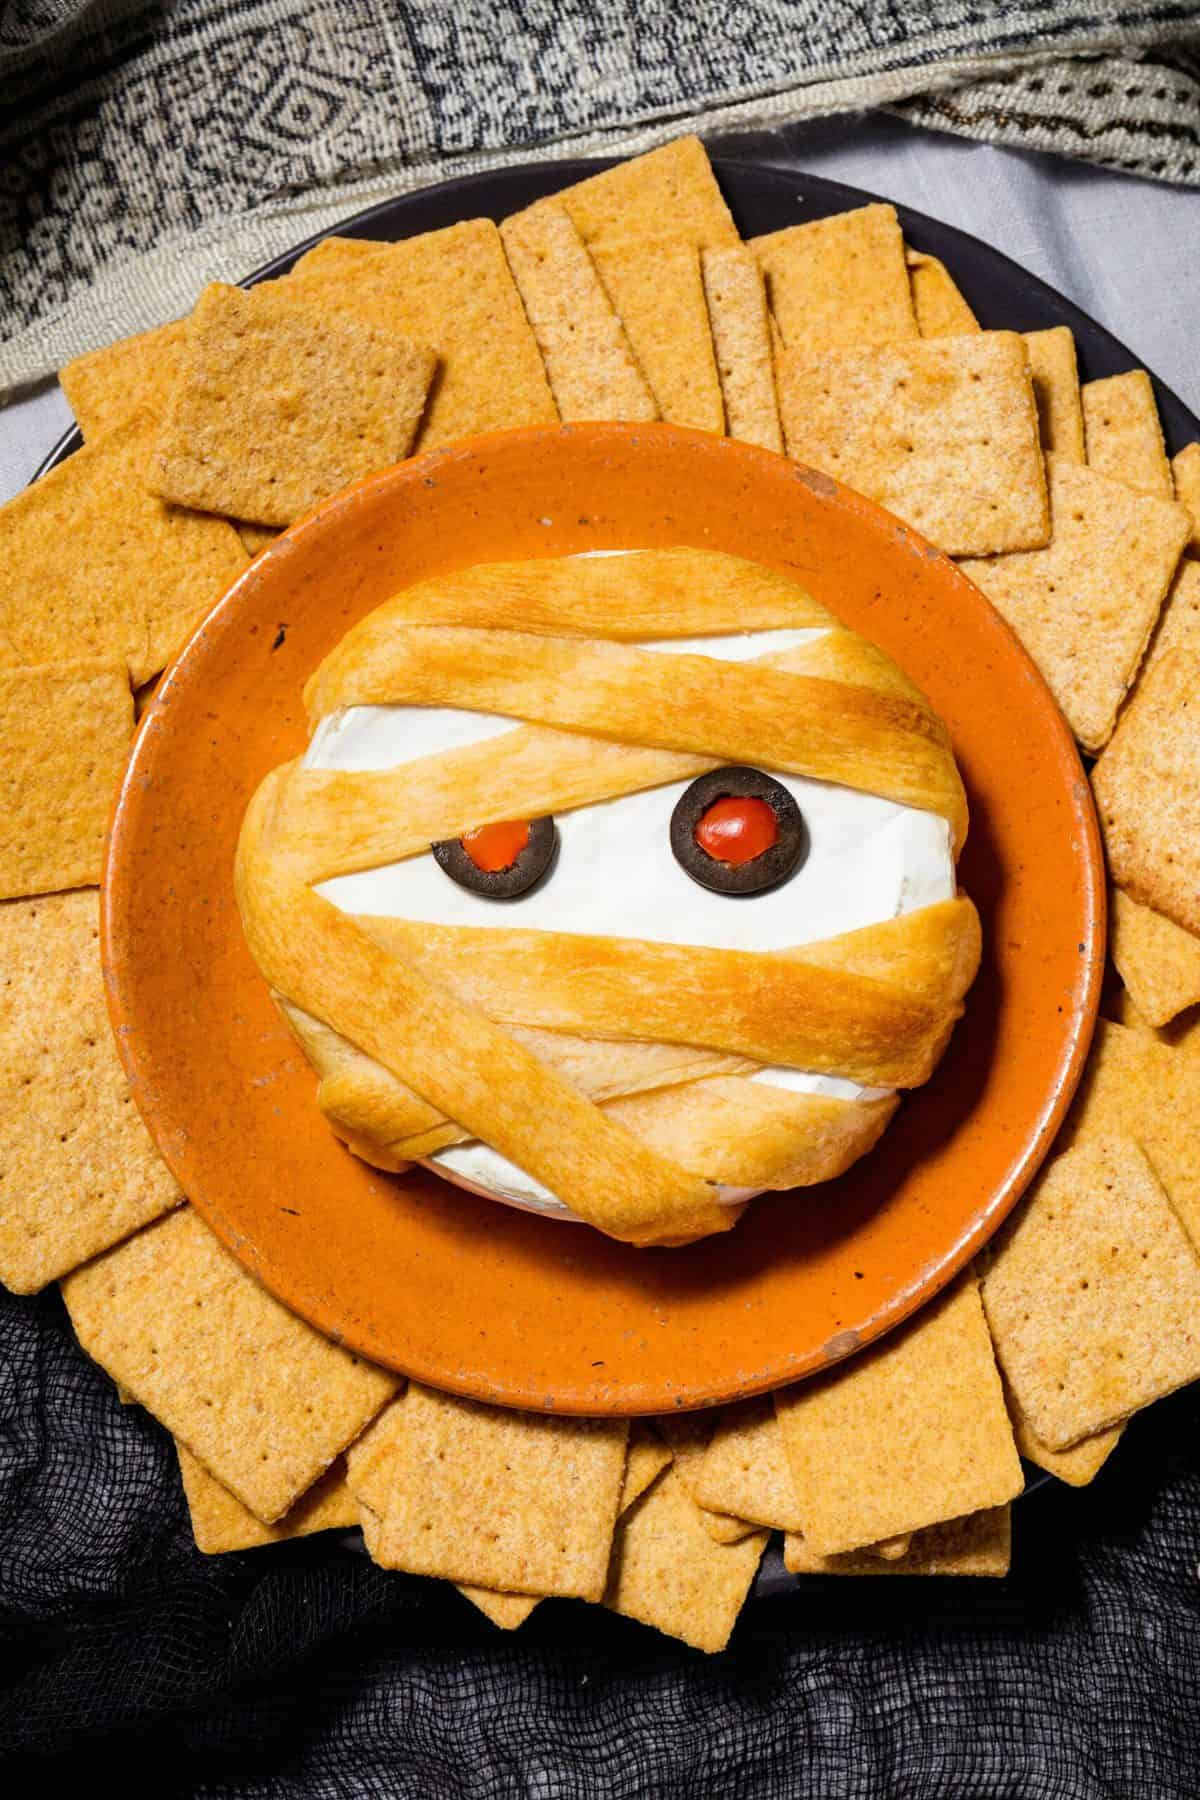 brie cheese appetizer wrapped in puff pastry dough to look like  a mummy.